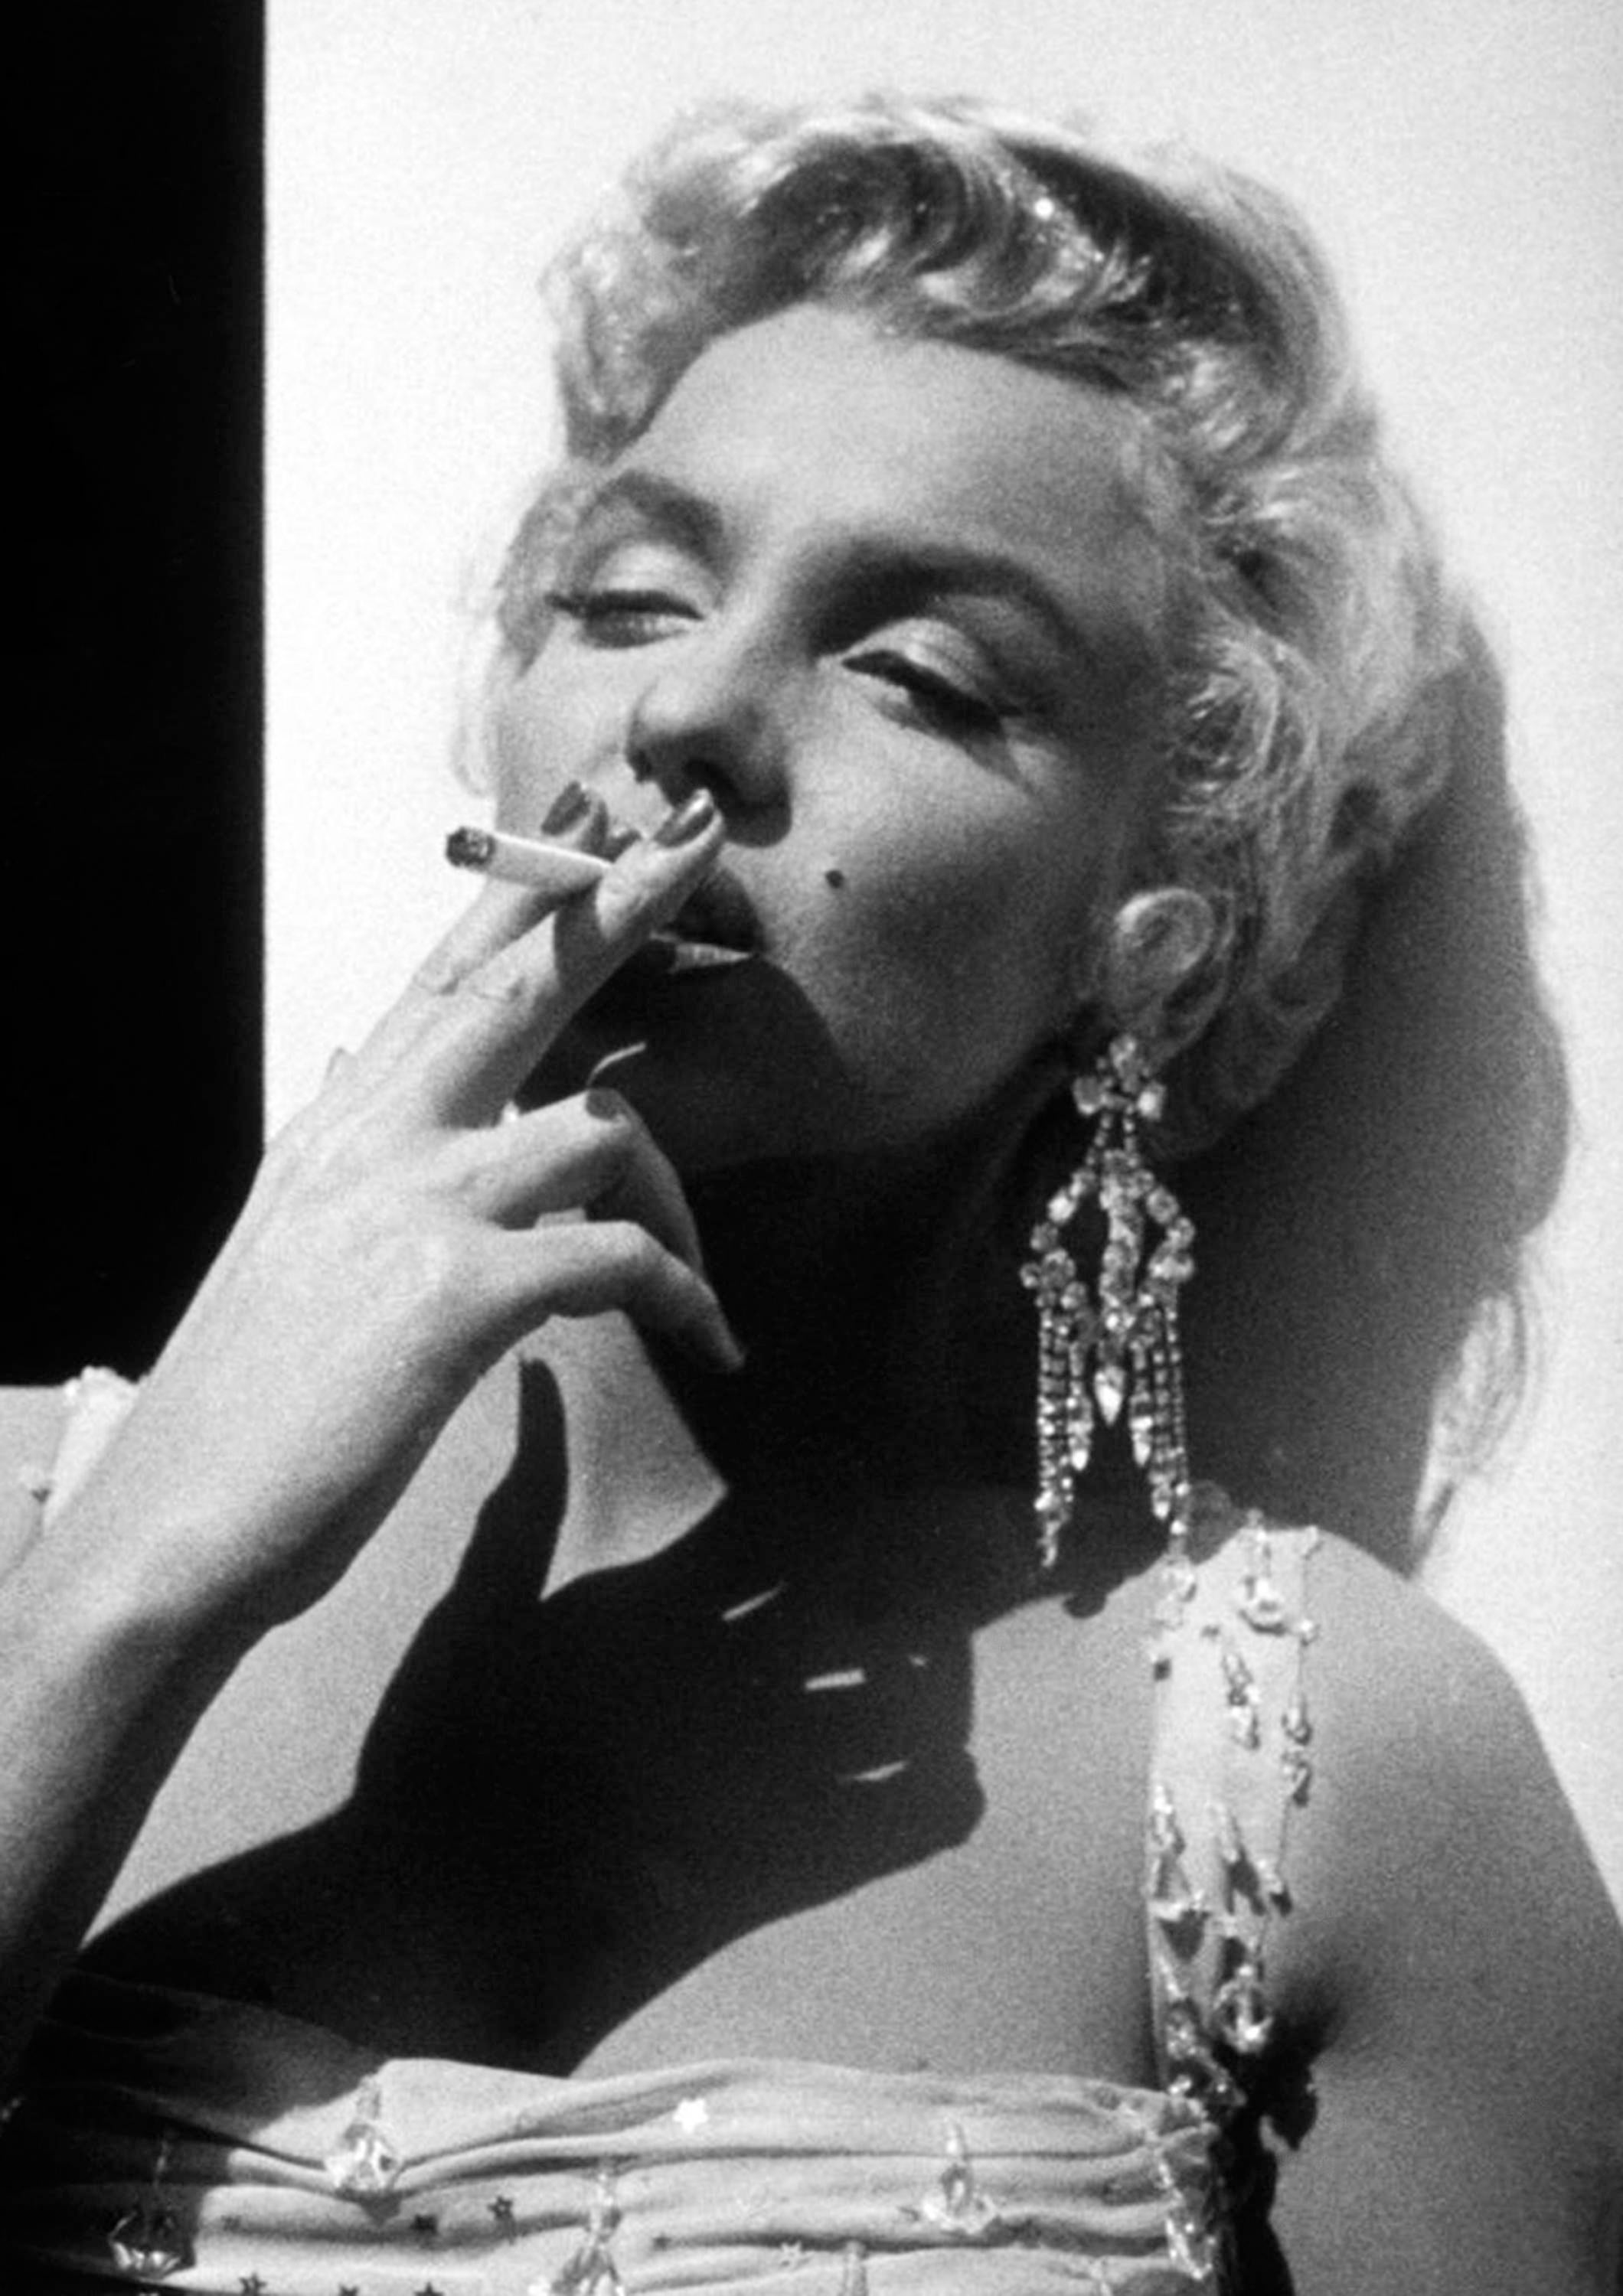 Marilyn Monroe Monochrome Photographic Print 65 (A4 Size - 210mm x ...